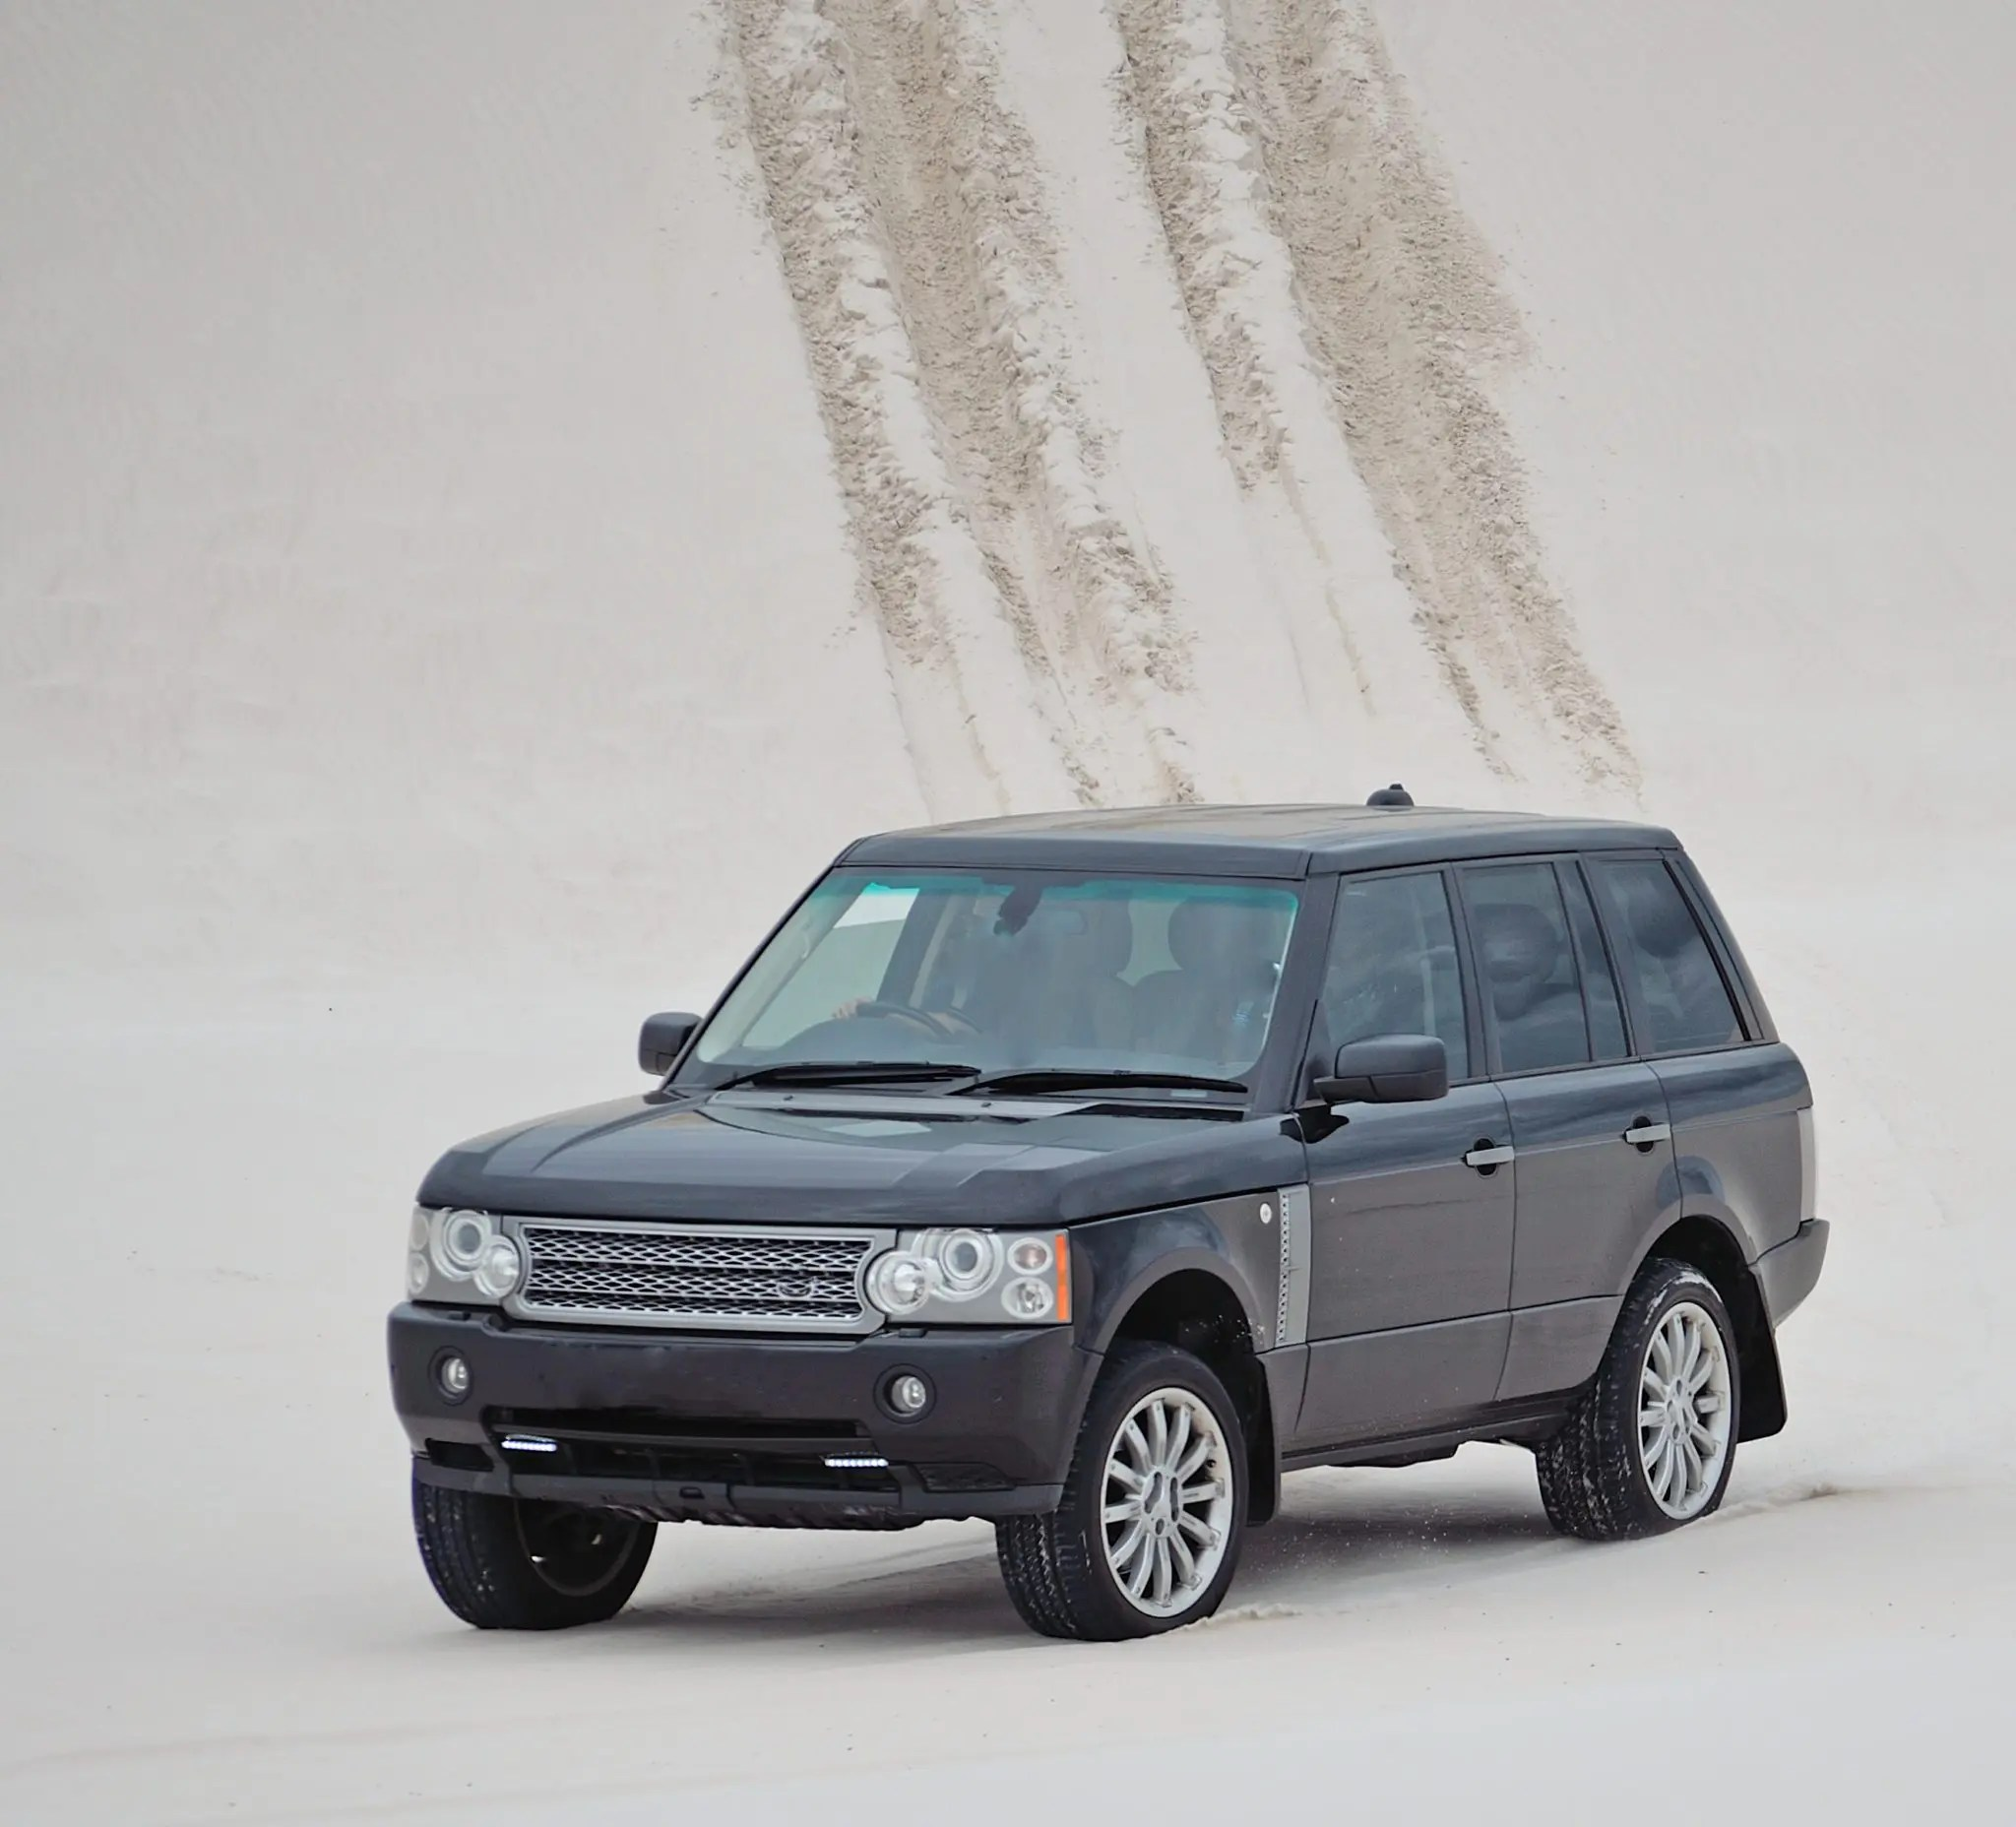 Range Rover Secretly Bumps Engine Displacement for 3 0L Motors